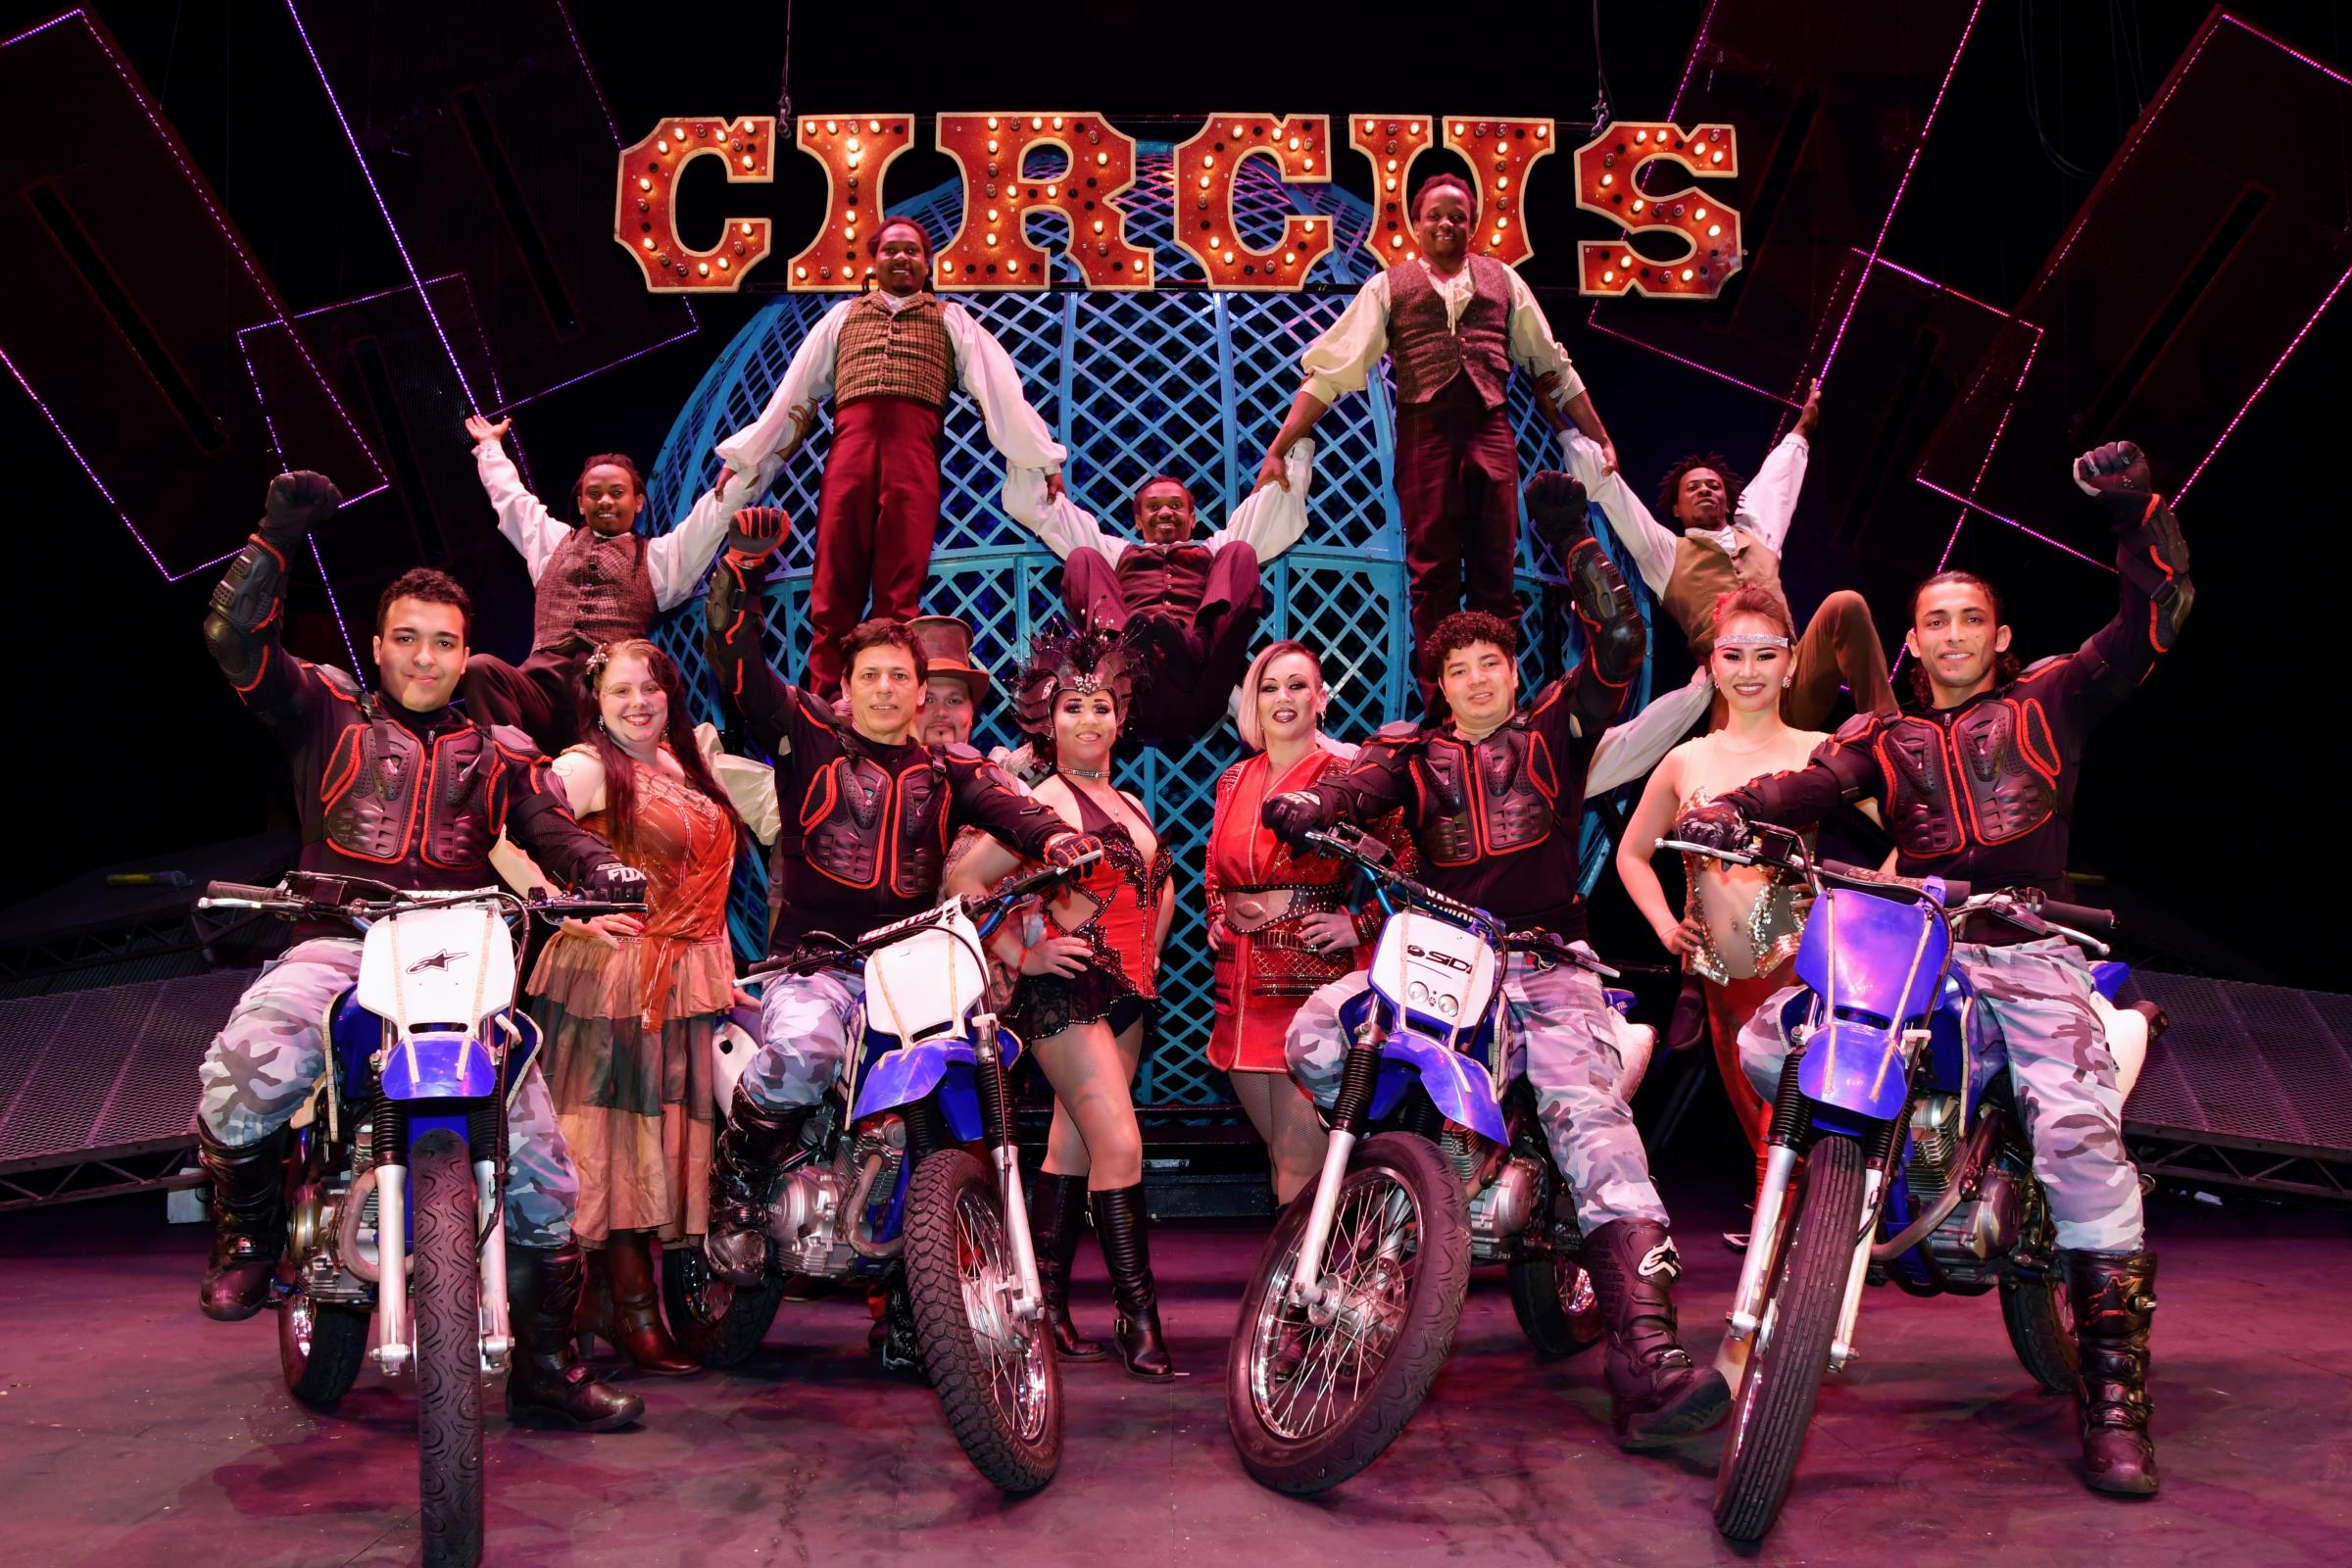 REVIEW: Cirque Berserk! at the Anvil